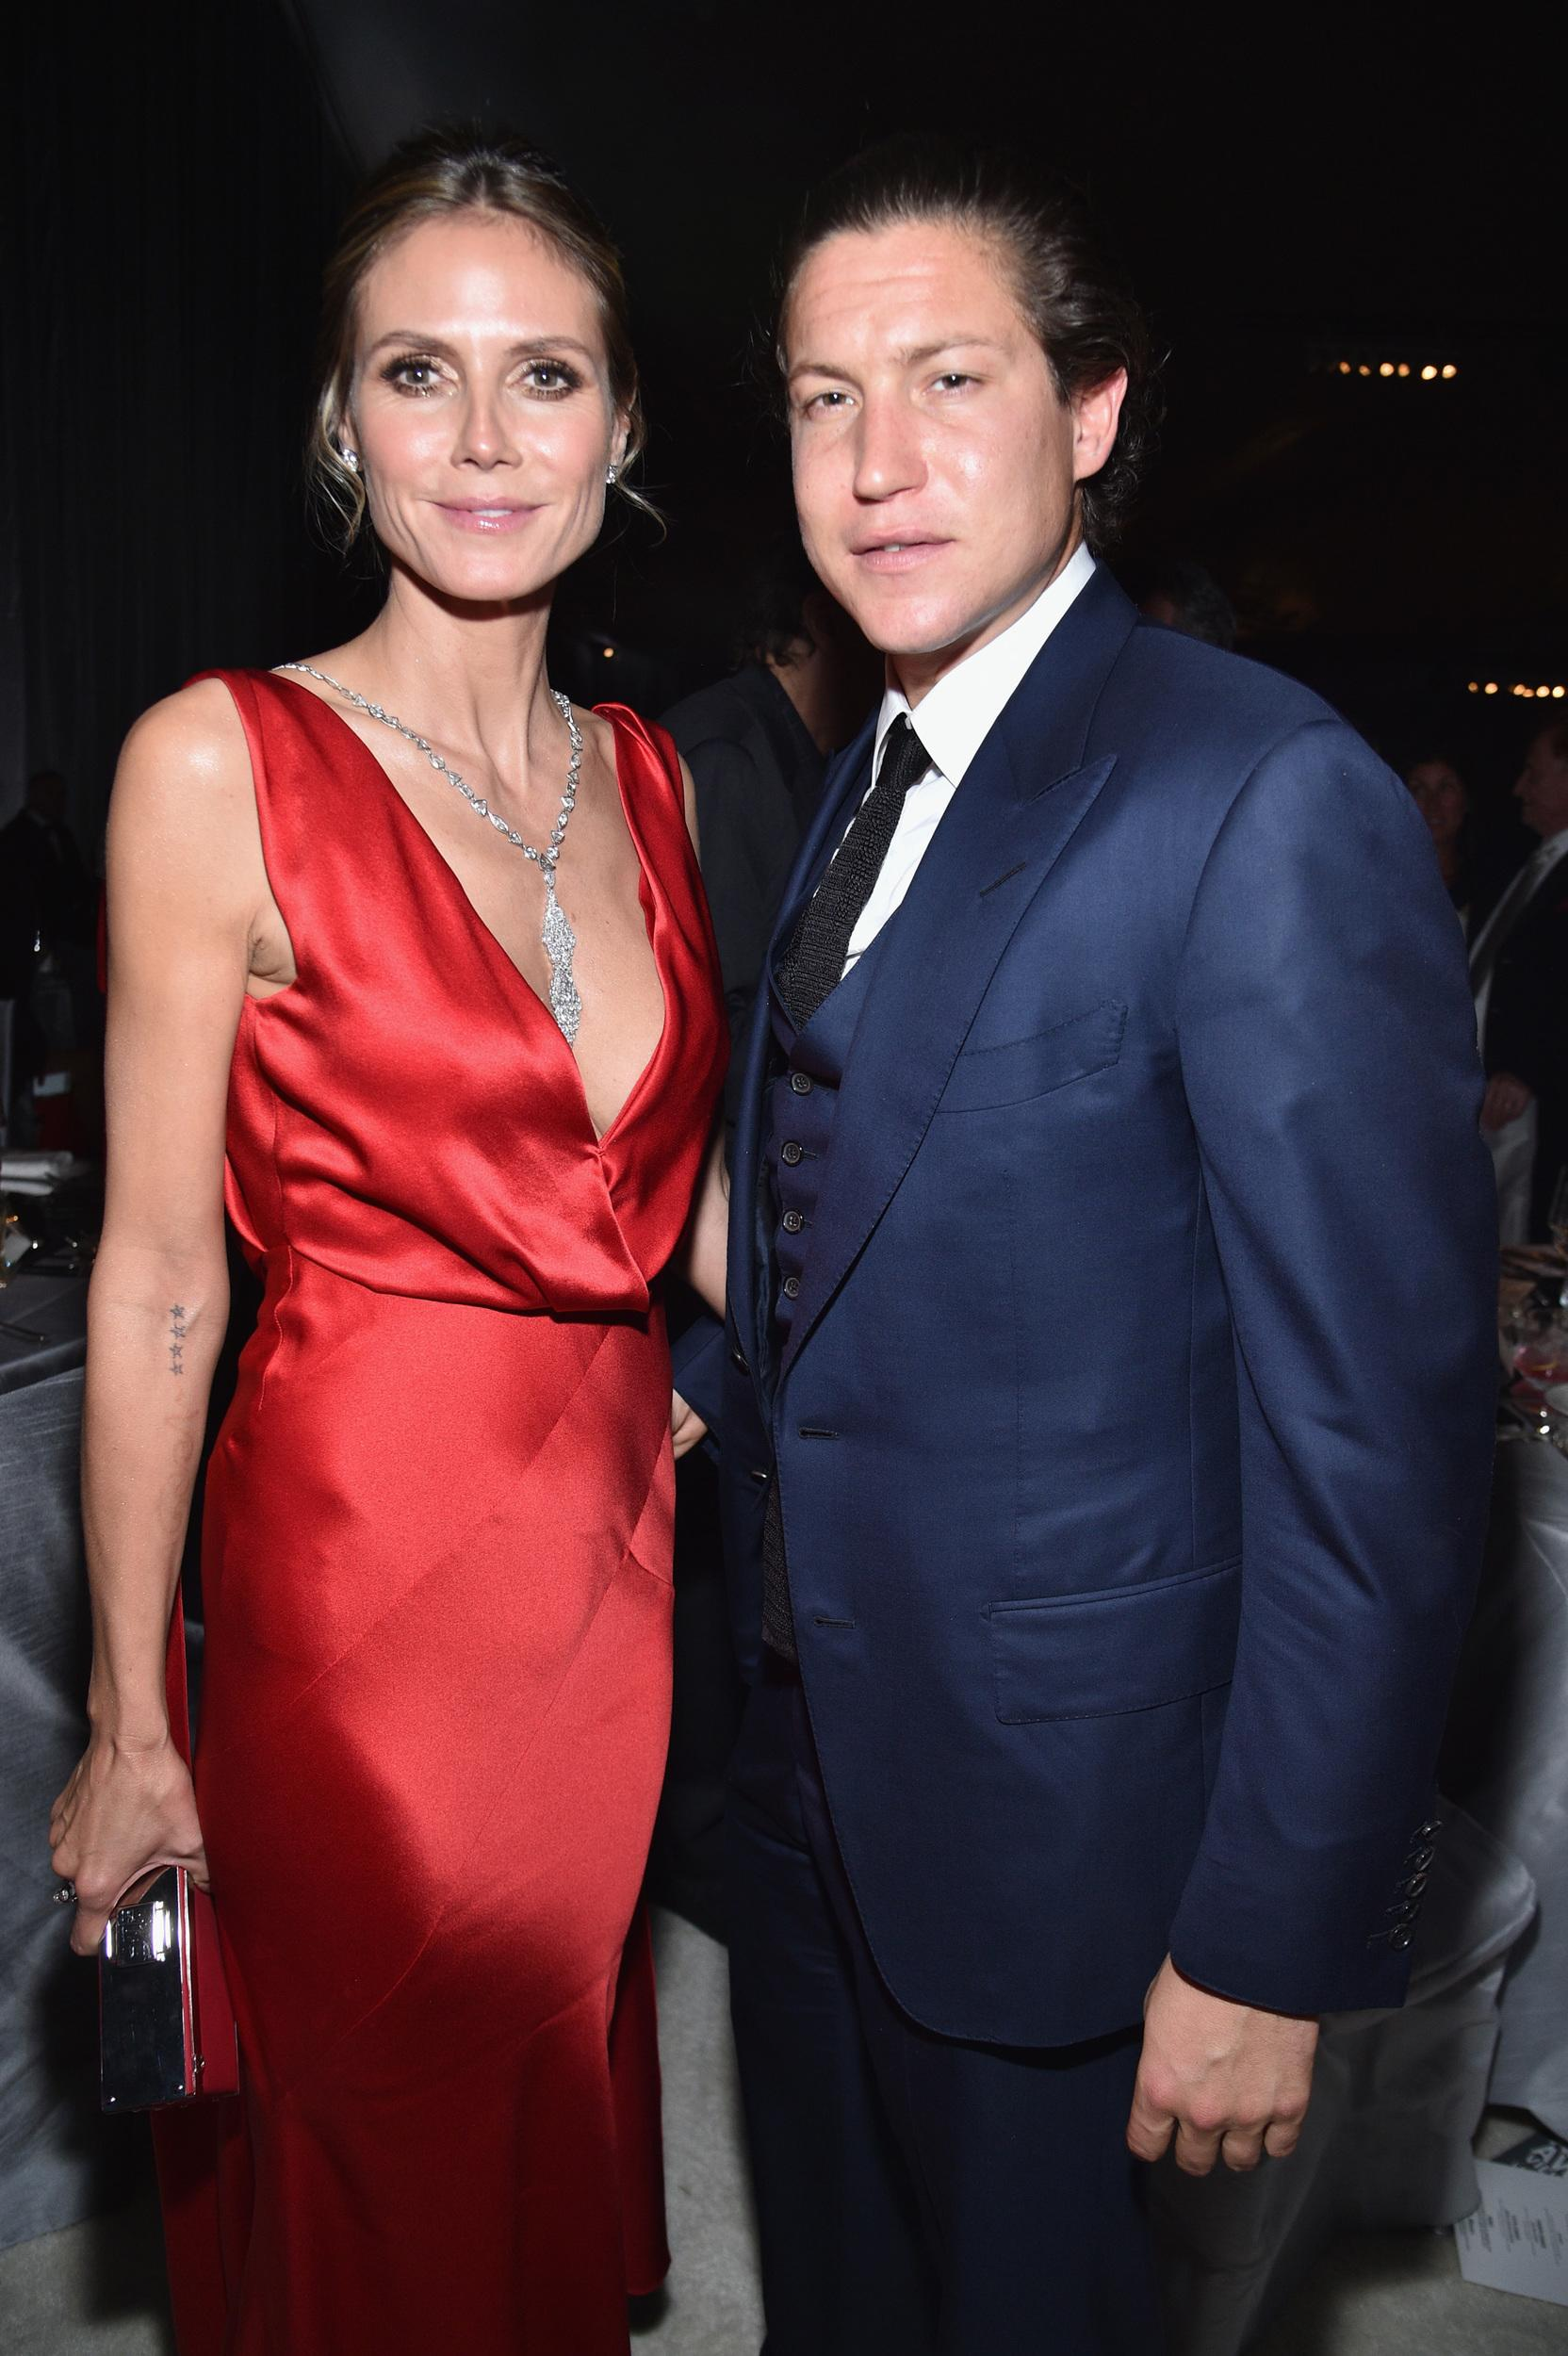 WEST HOLLYWOOD, CA - FEBRUARY 26:  Model Heidi Klum (L) and Vito Schnabel  attend the 25th Annual Elton John AIDS Foundation's Academy Awards Viewing Party at The City of West Hollywood Park on February 26, 2017 in West Hollywood, California.  (Photo by Kevin Mazur/Getty Images for EJAF )